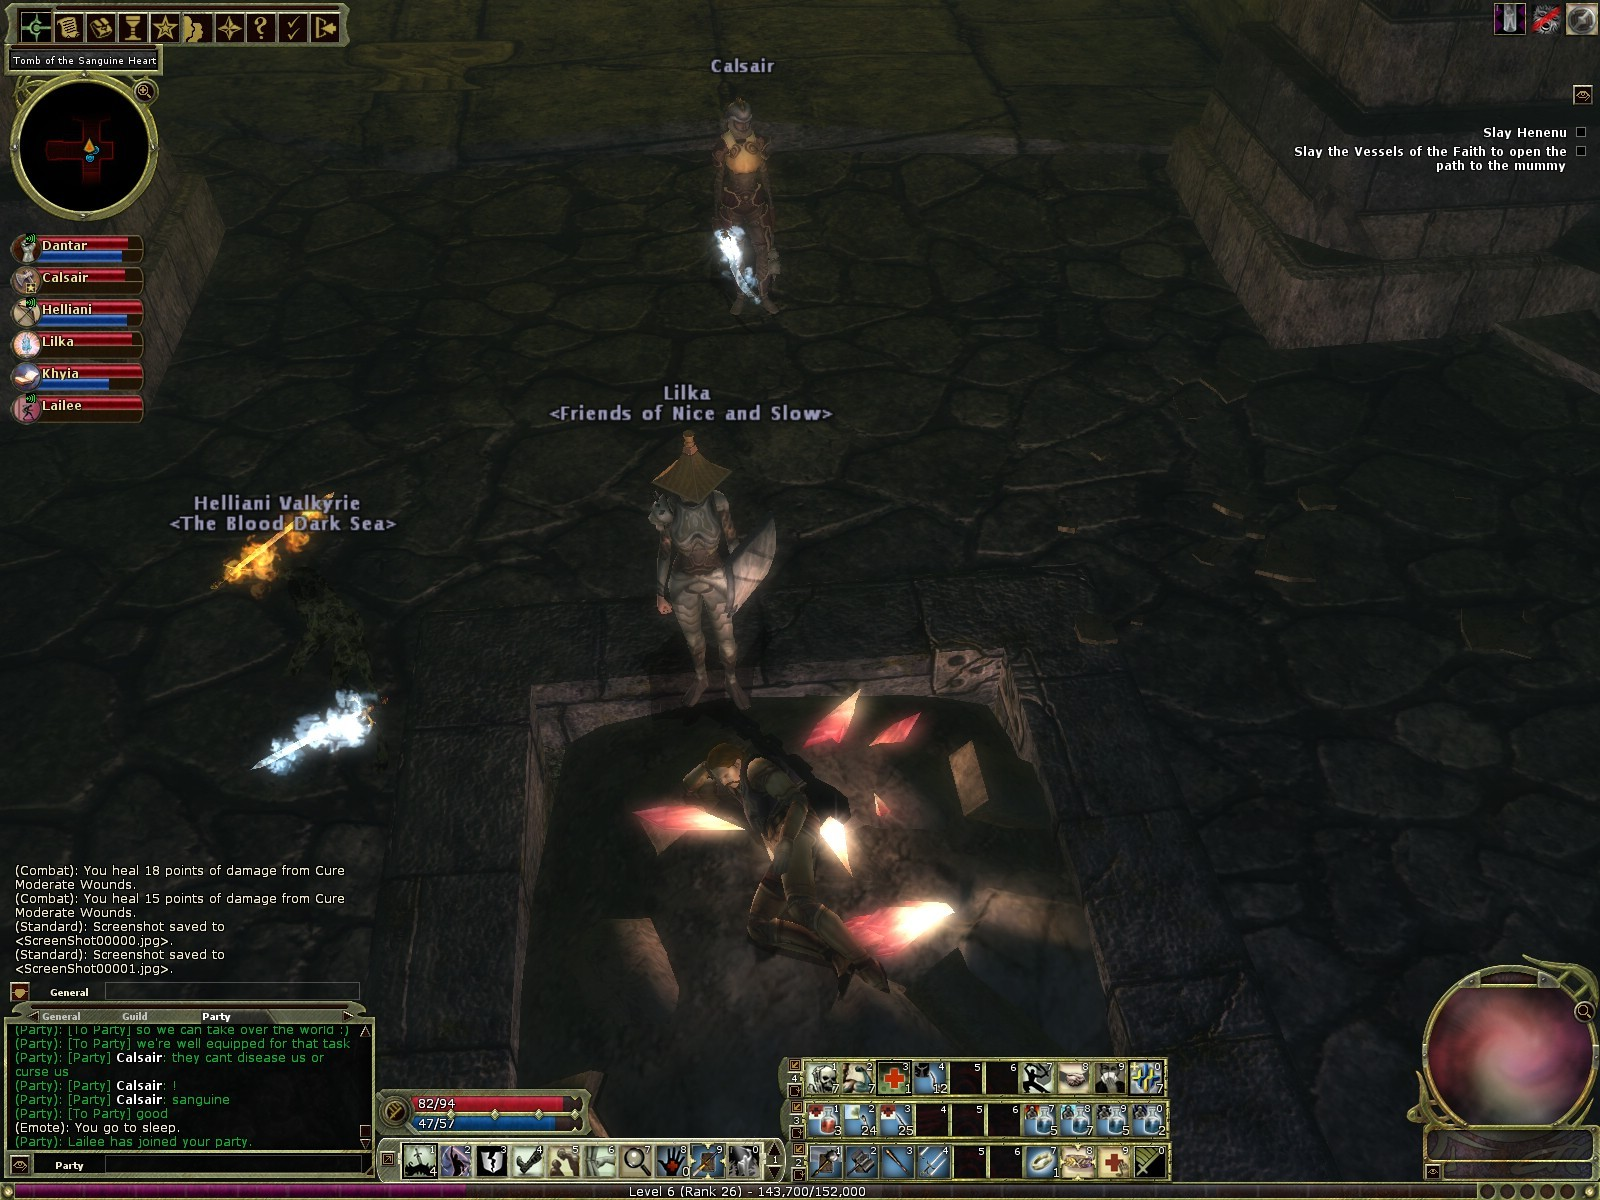 Dungeons & Dragons Online - DDO: Actual discussion ; ).